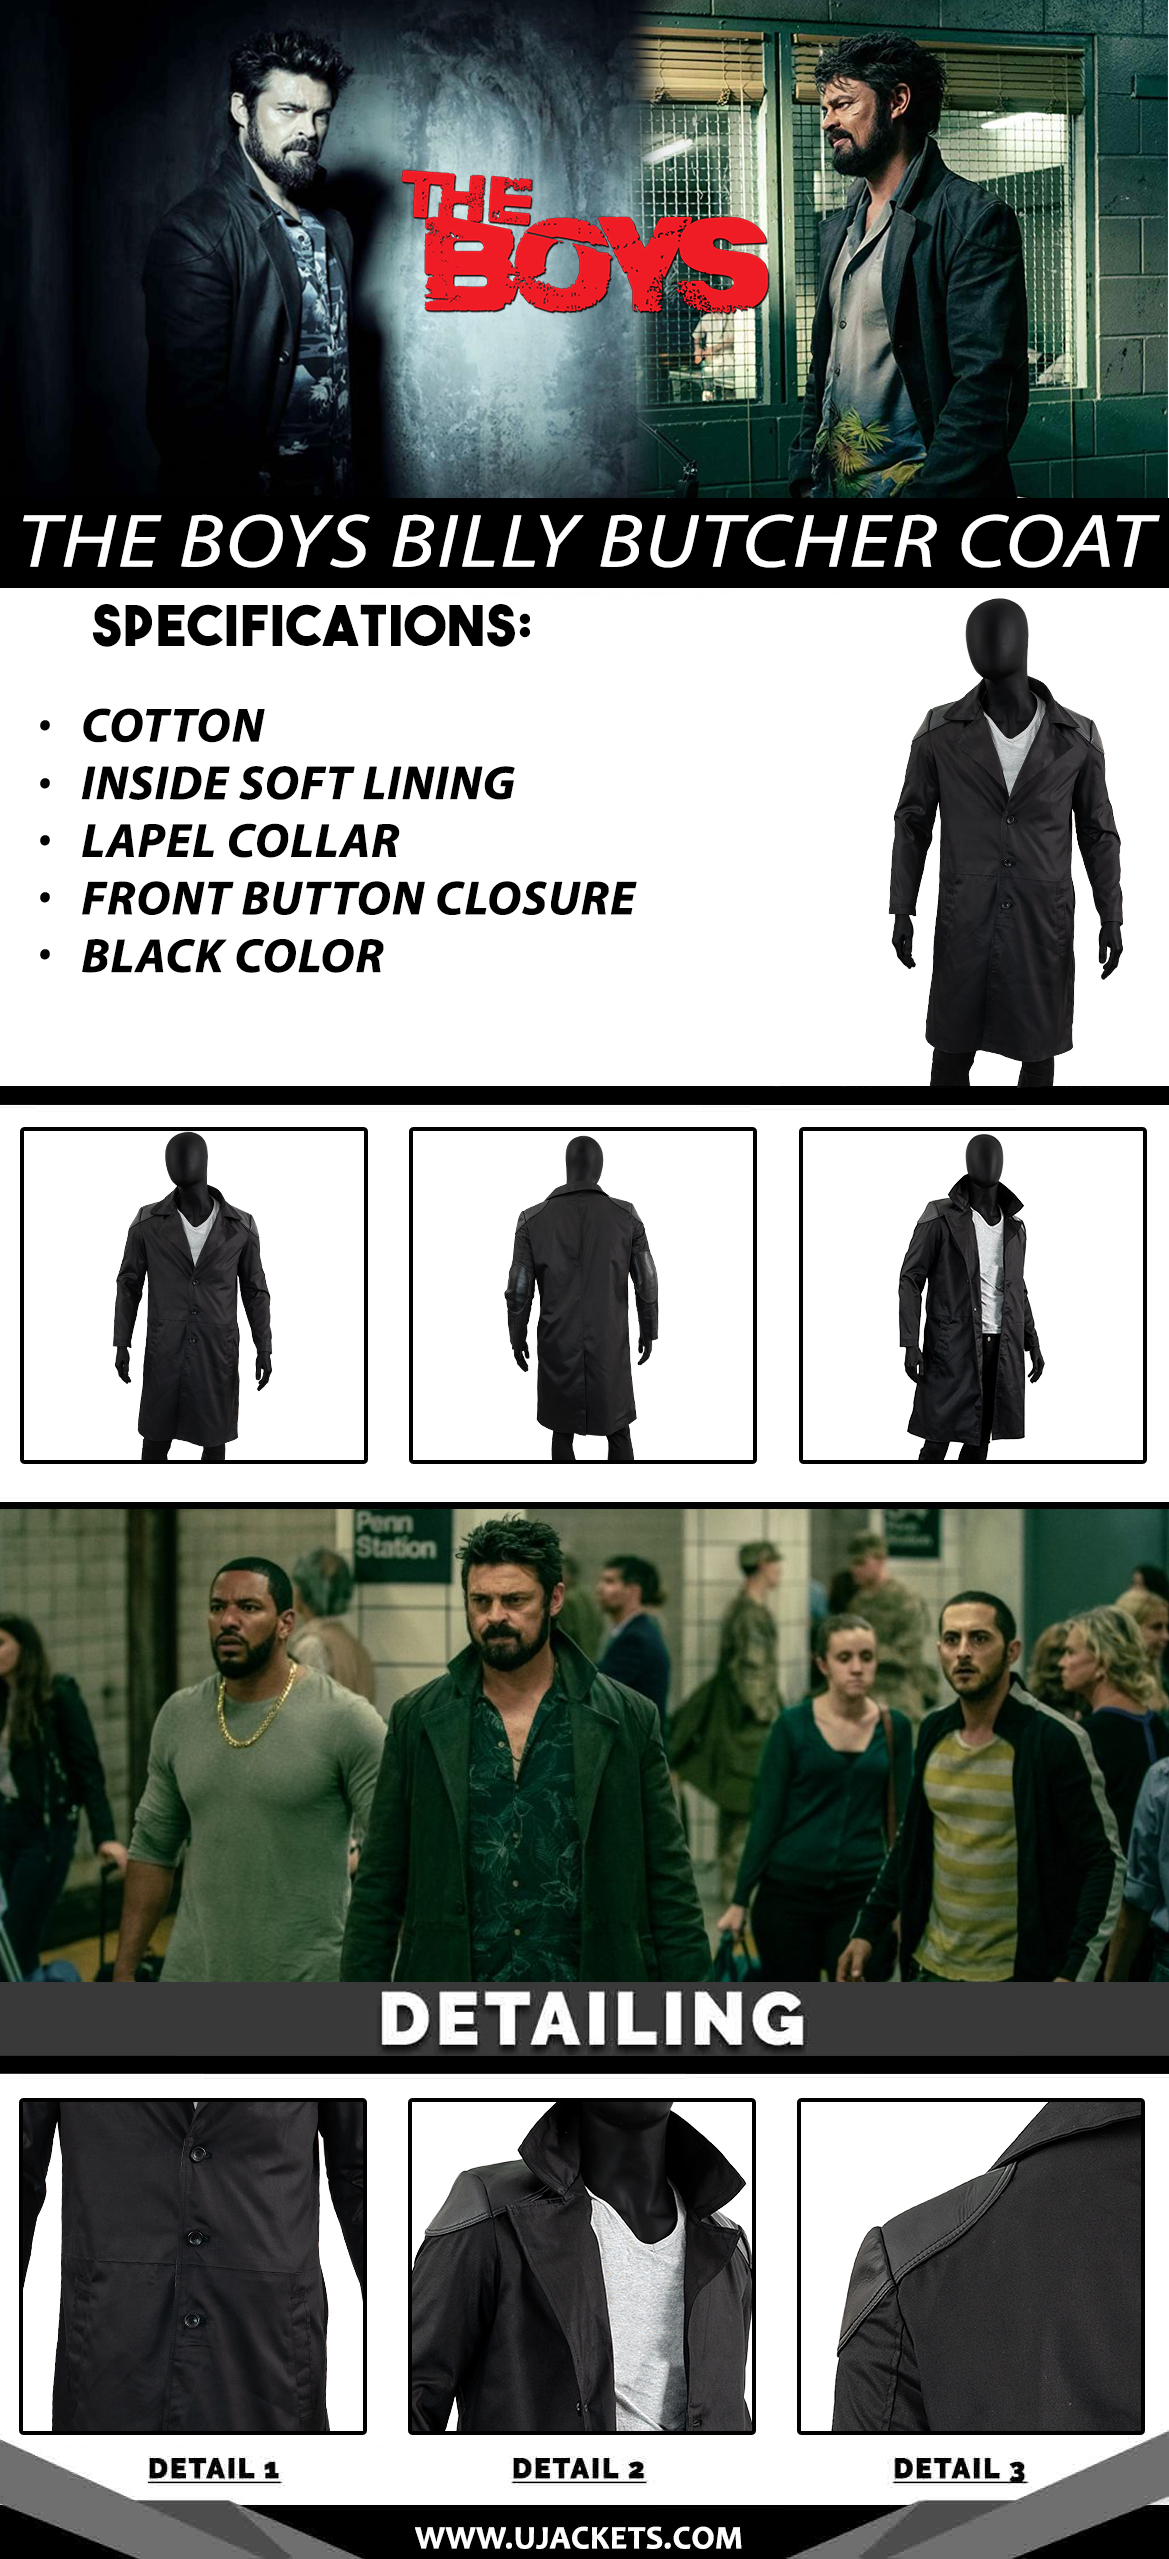 infographic-The-Boys-Billy-Butcher-Coat